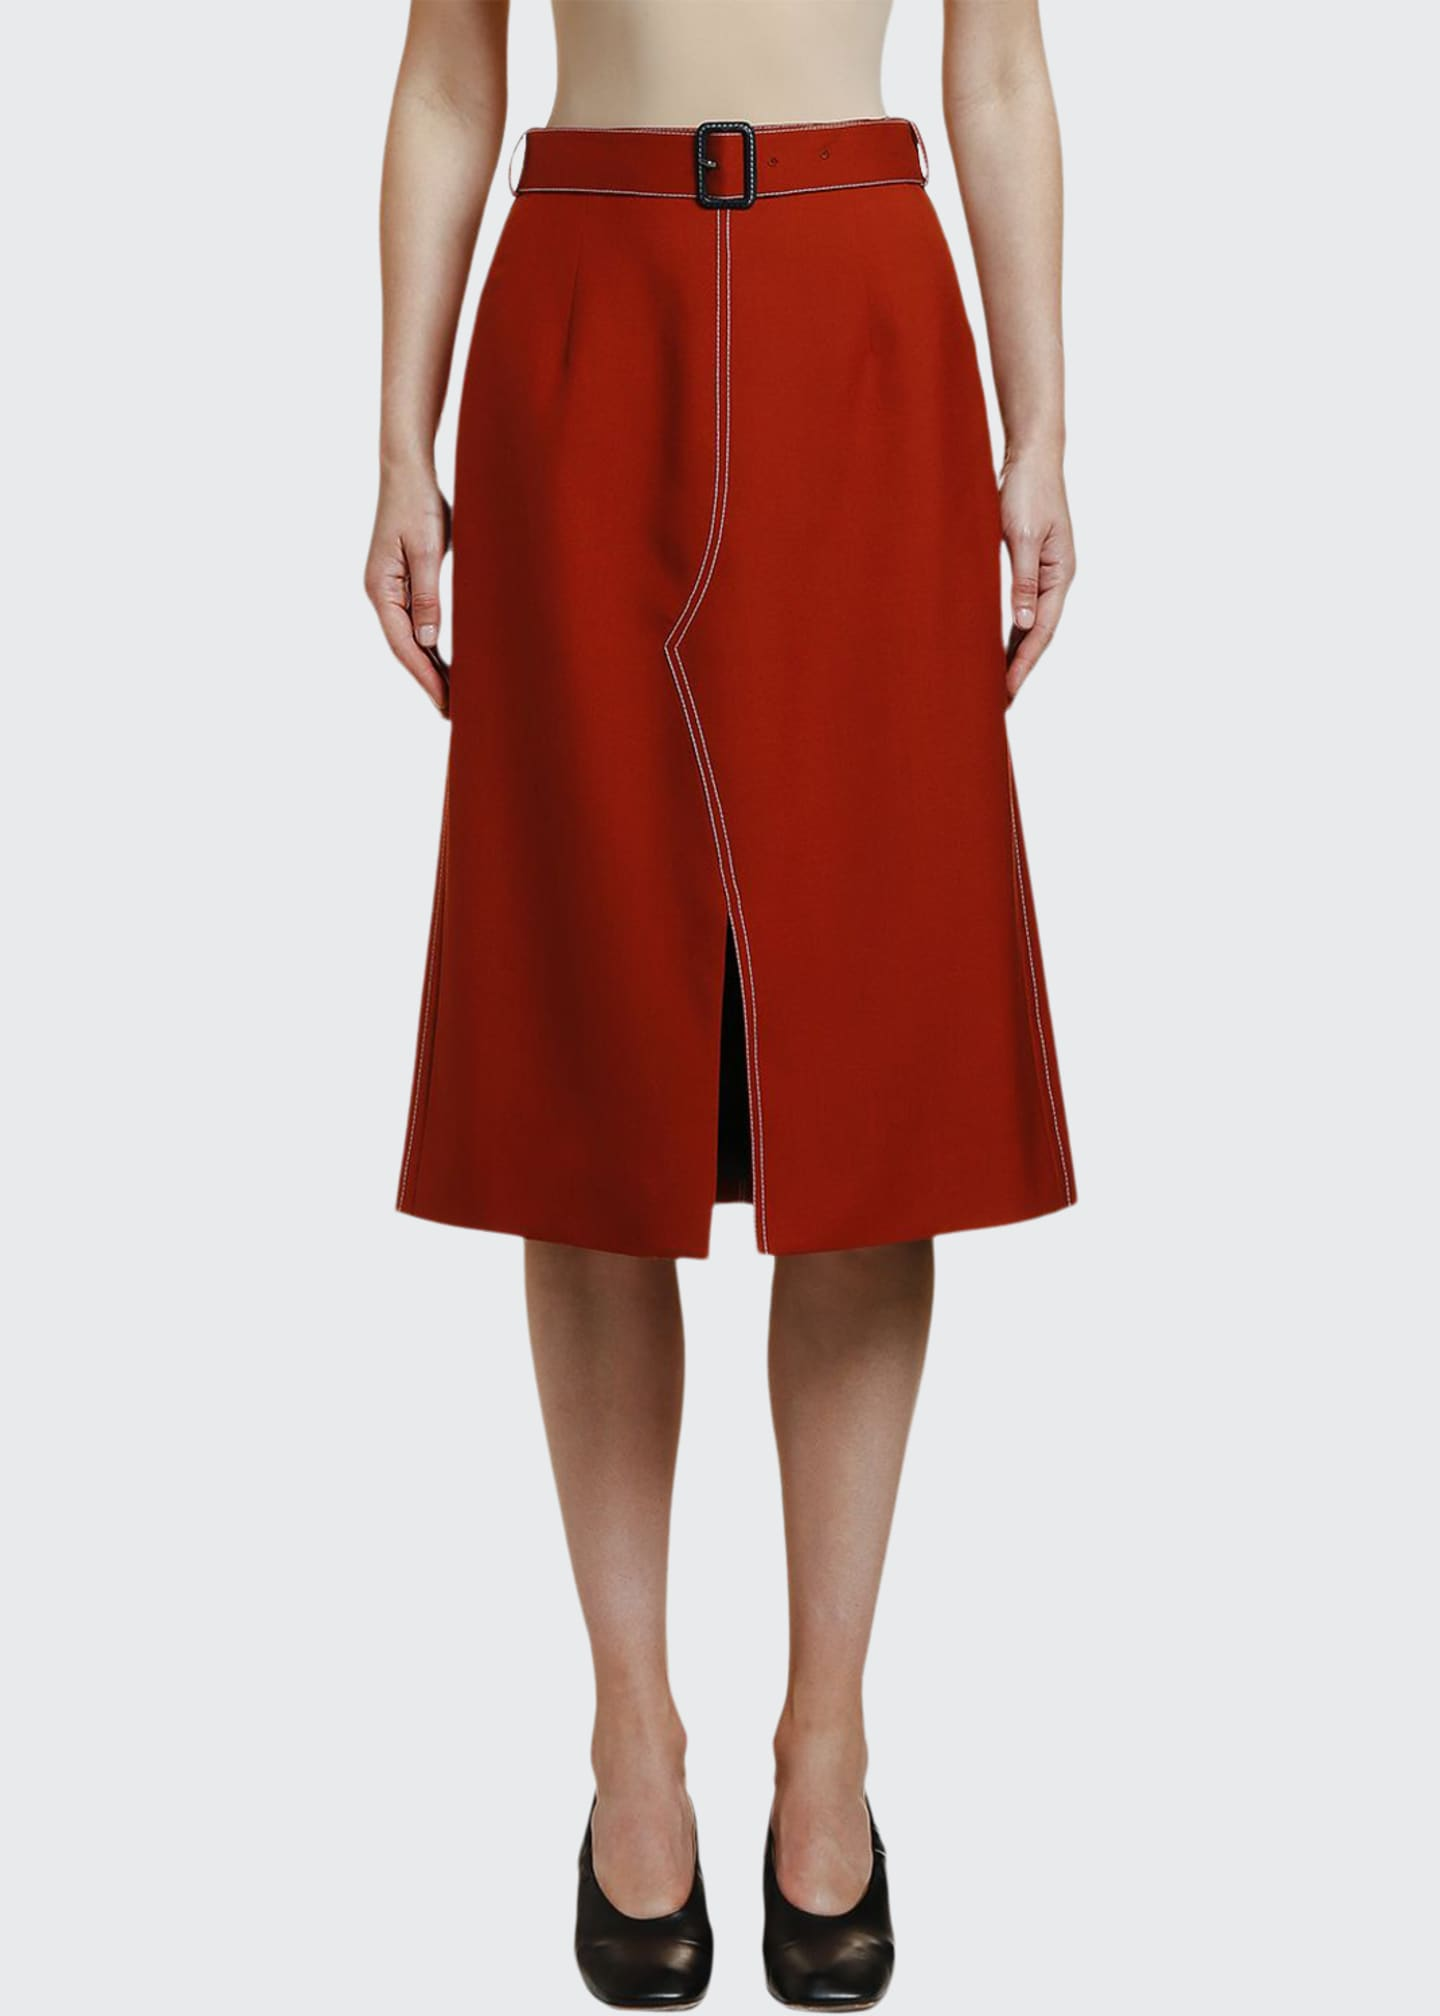 Marni Belted Wool Utility Skirt